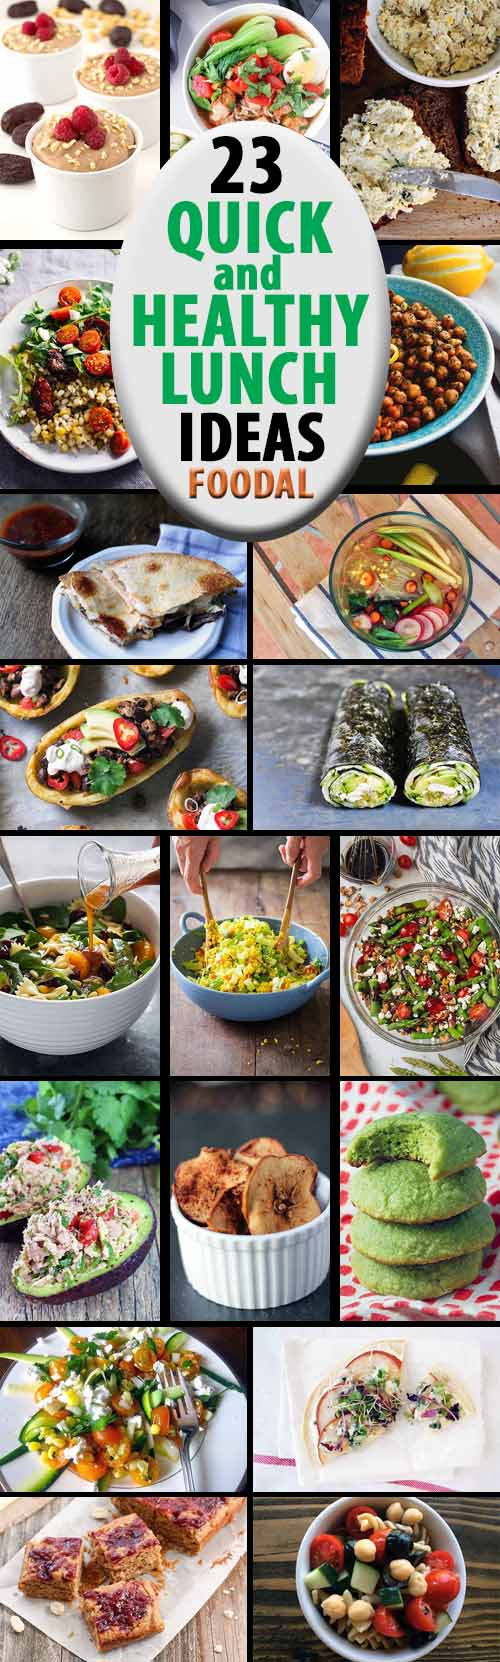 23 quick and healthy lunch ideas | foodal